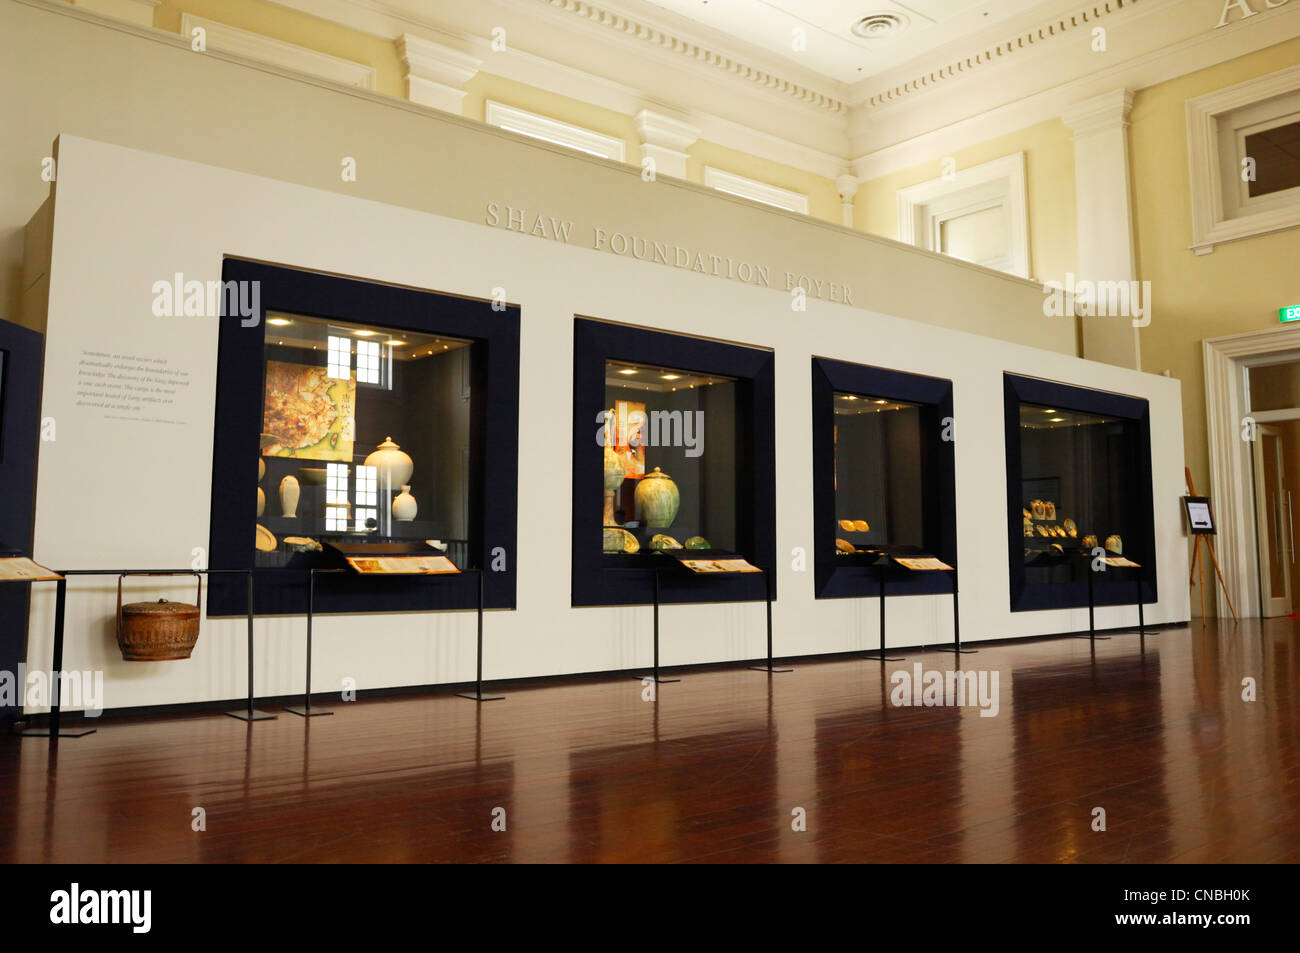 Singapore, Asian Civilisations Museum, exhibition hall and museum showcases - Stock Image